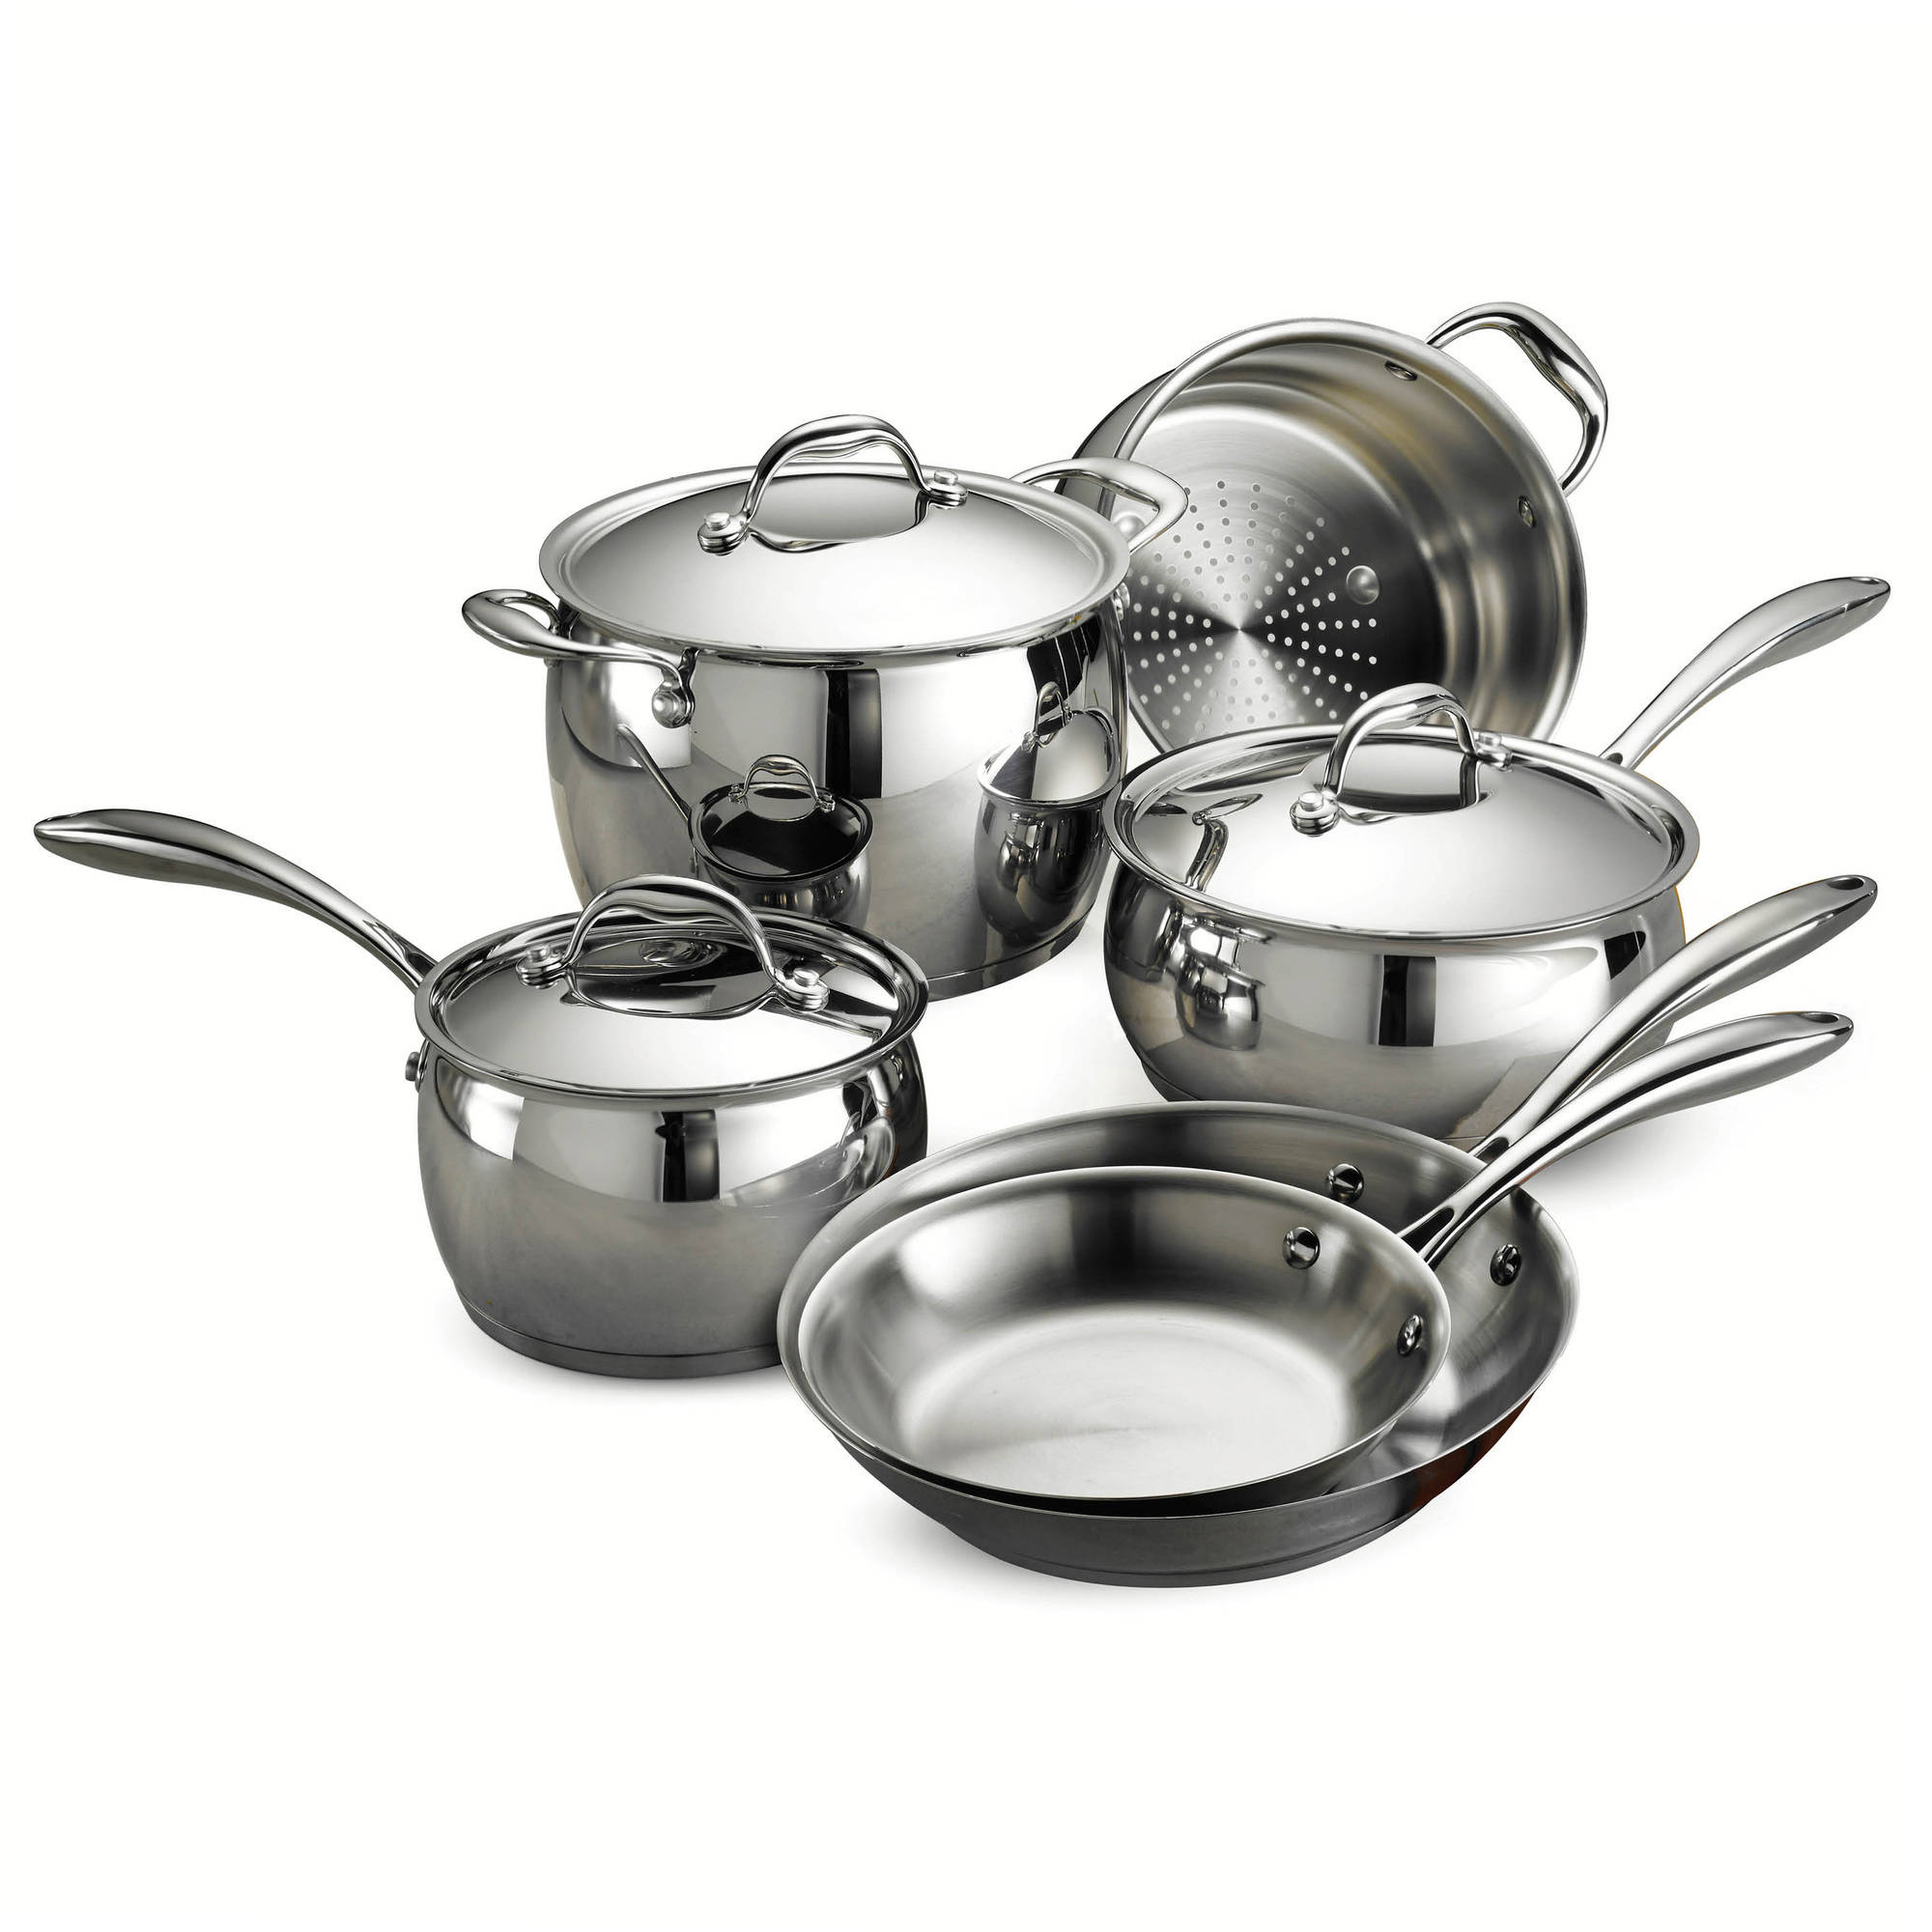 Tramontina Gourmet Domus Stainless Steel 9-Piece Cookware Set